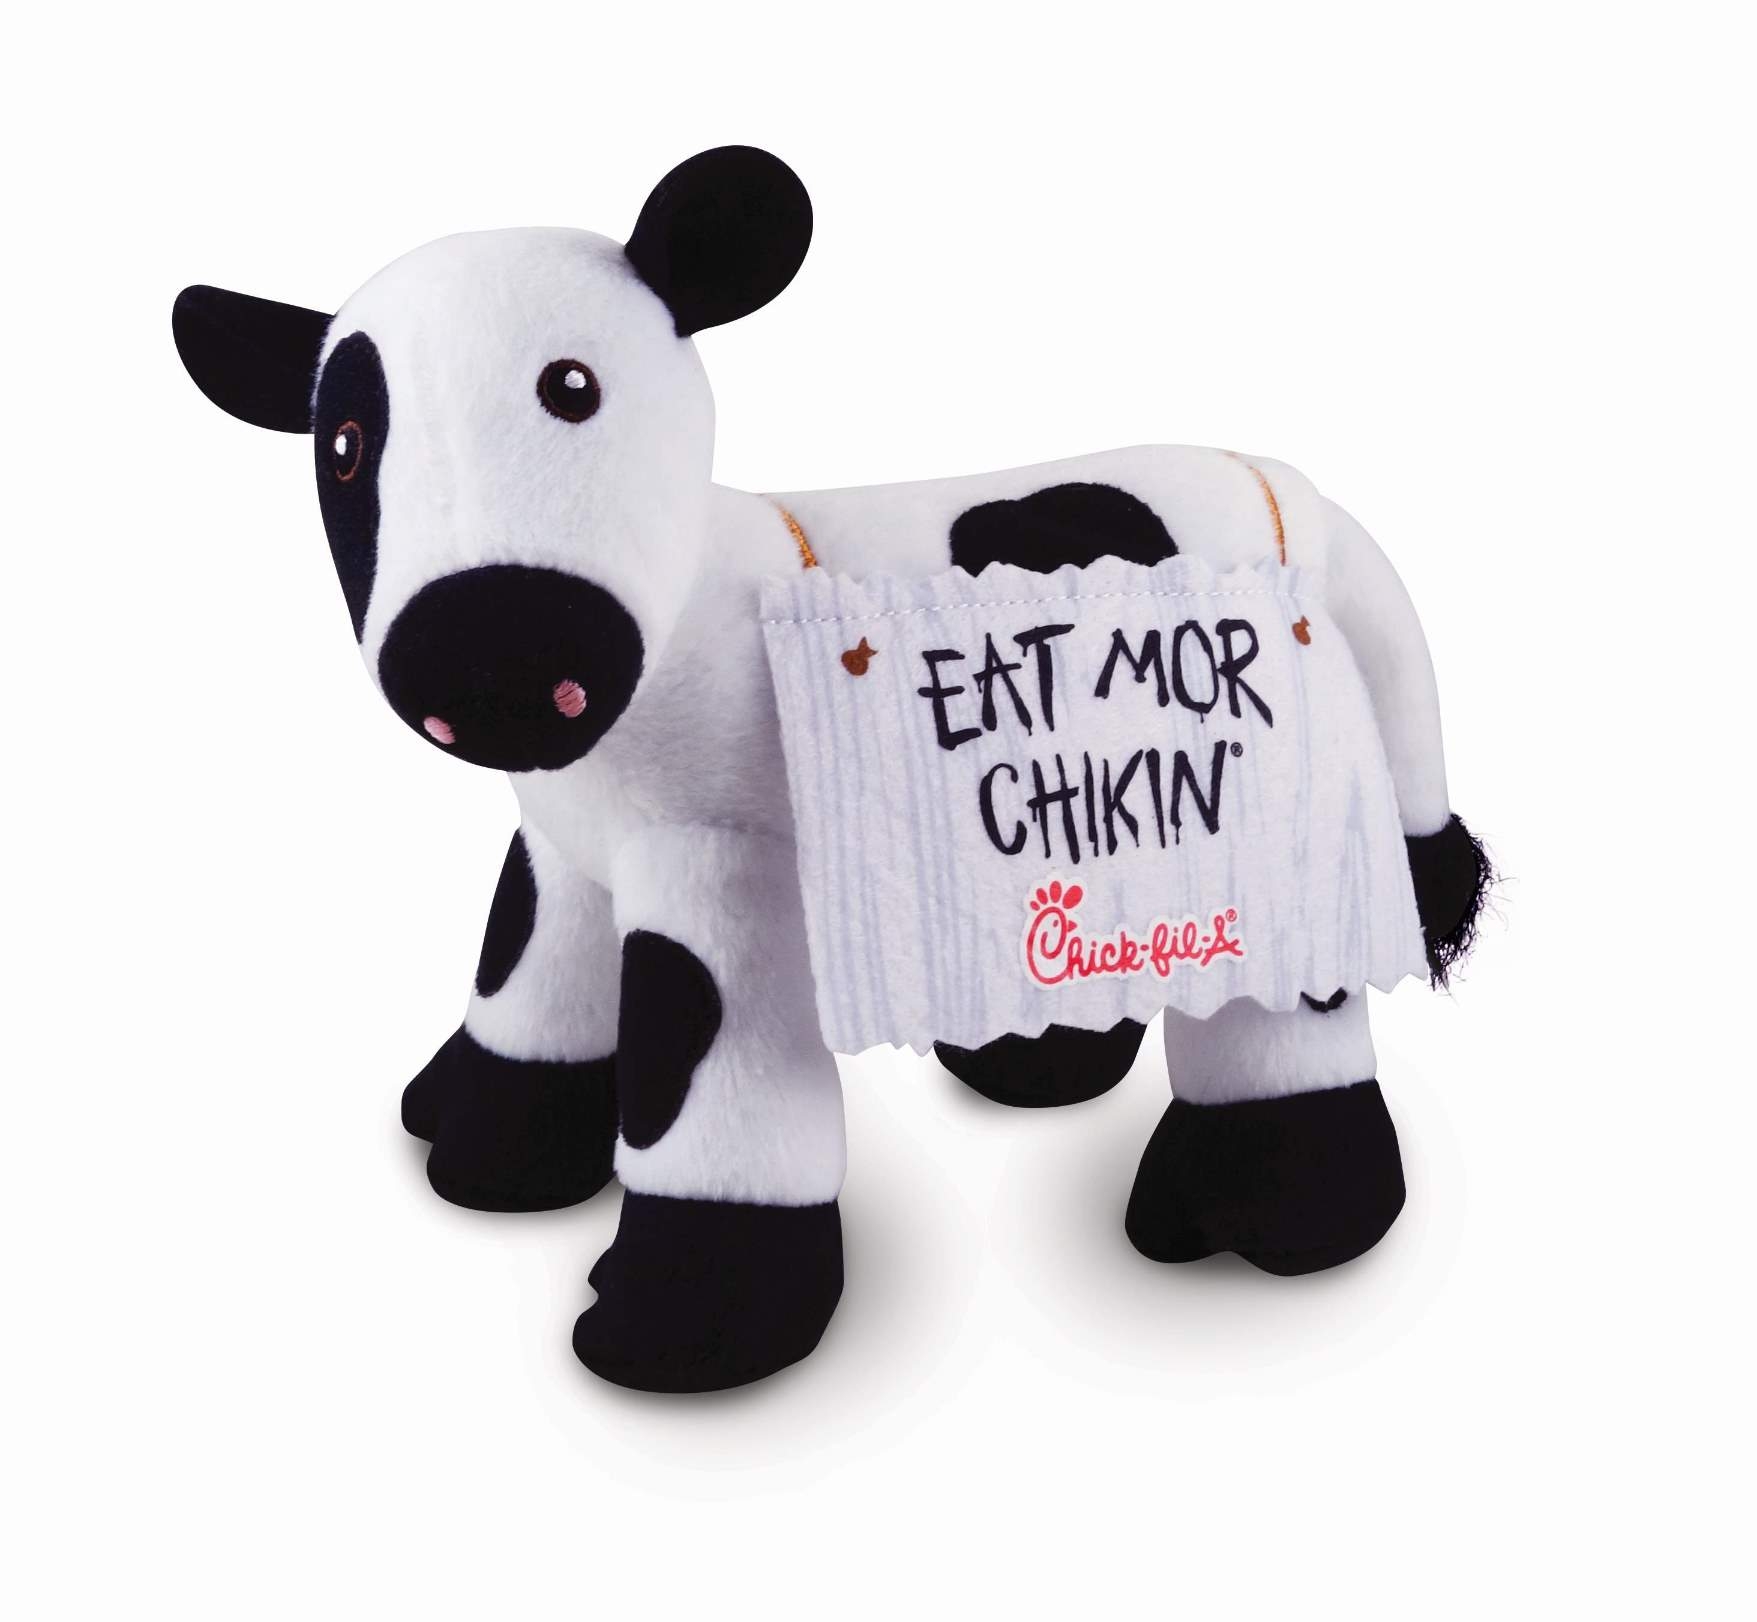 photo about Eat More Chicken Printable Sign identified as 20th Anniversary of the Try to eat Mor Chikin Cow Marketing campaign Chick